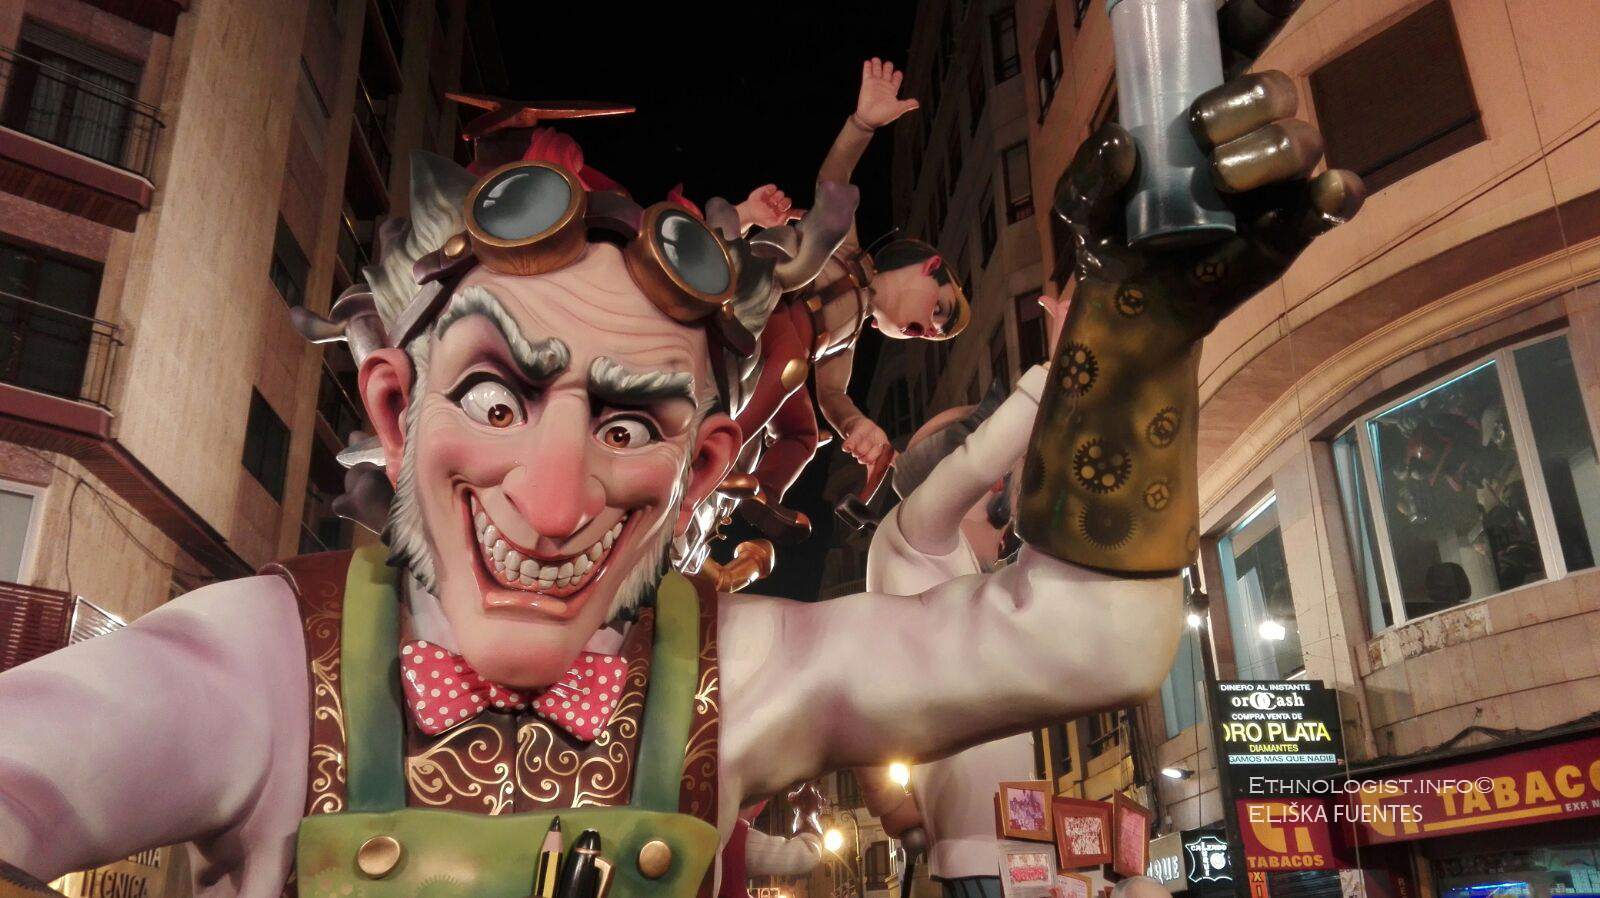 Las Fallas Festival in Valencia. Photo: Eliska Fuentes